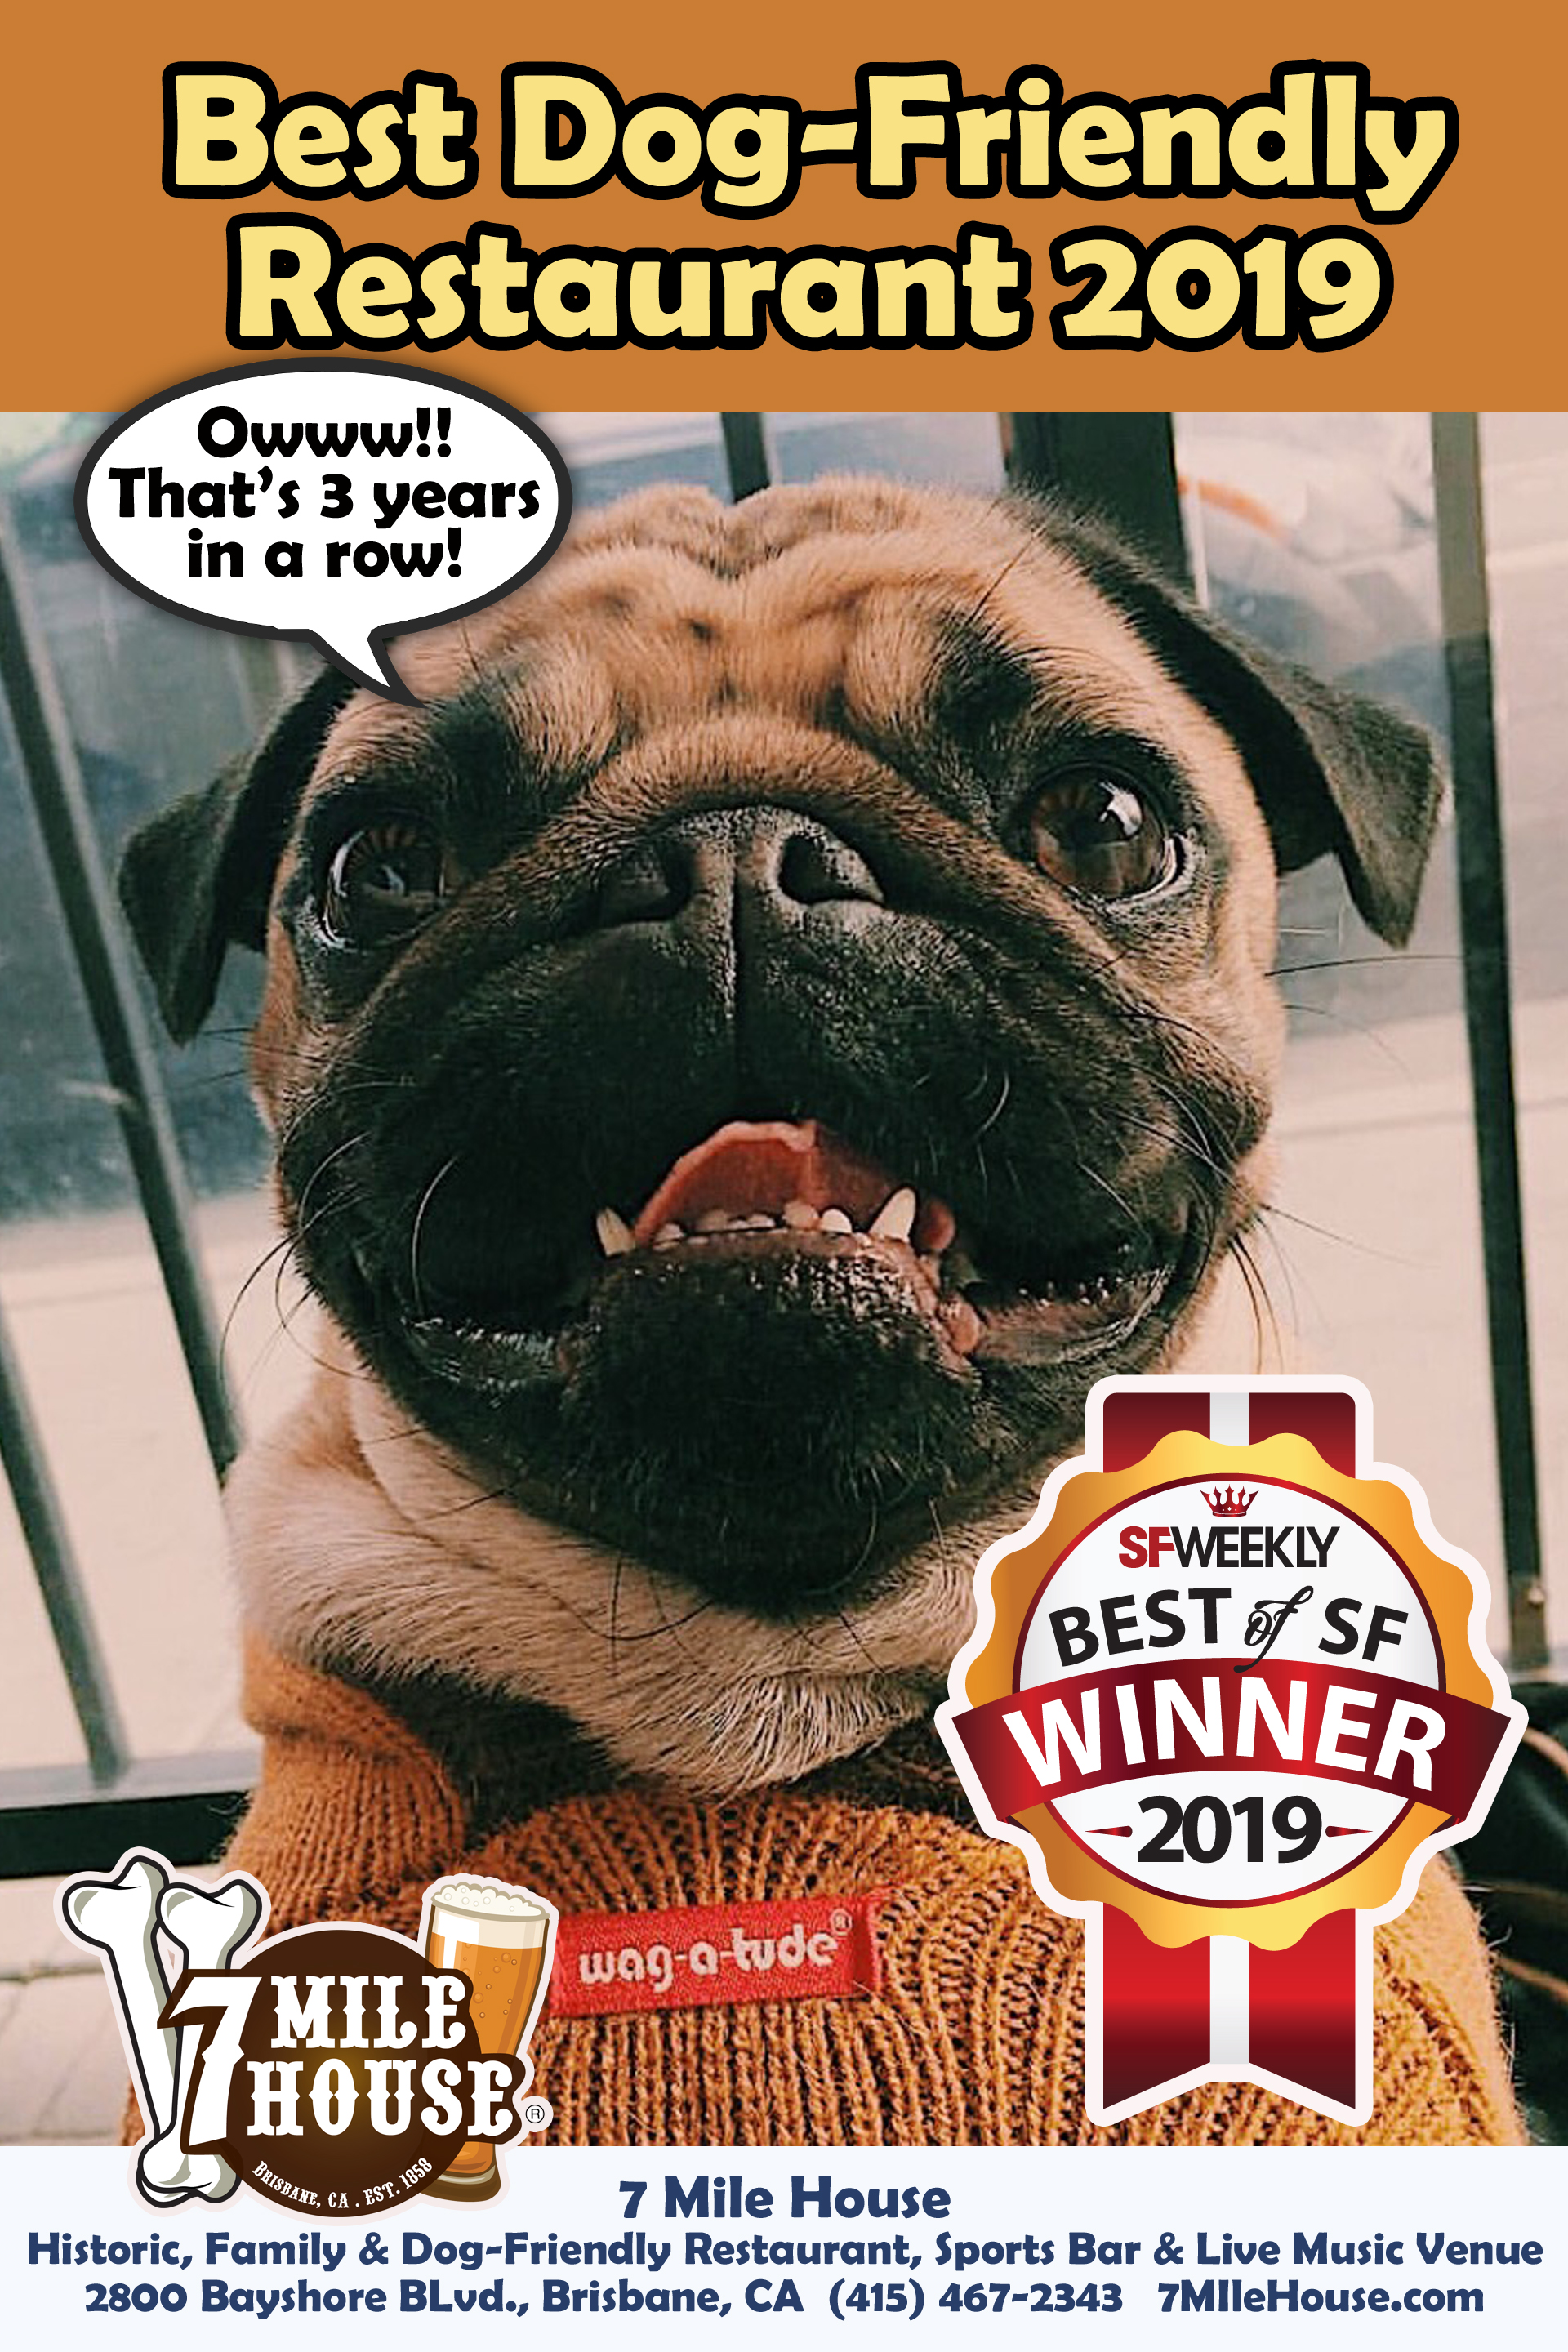 THANK YOU FOR VOTING US BEST DOG-FRIENDLY RESTAURANT 3 YEARS IN A ROW! - 2019 SFWeekly Best Dog-Friendly Restaurant2018 SFWeekly Best Dog-Friendly Restaurant2018 Bay Woof Beast of the Bay Best Dog-Friendly Bar Peninsula/South Bay2017 SFWeekly Best Dog-Friendly Restaurant